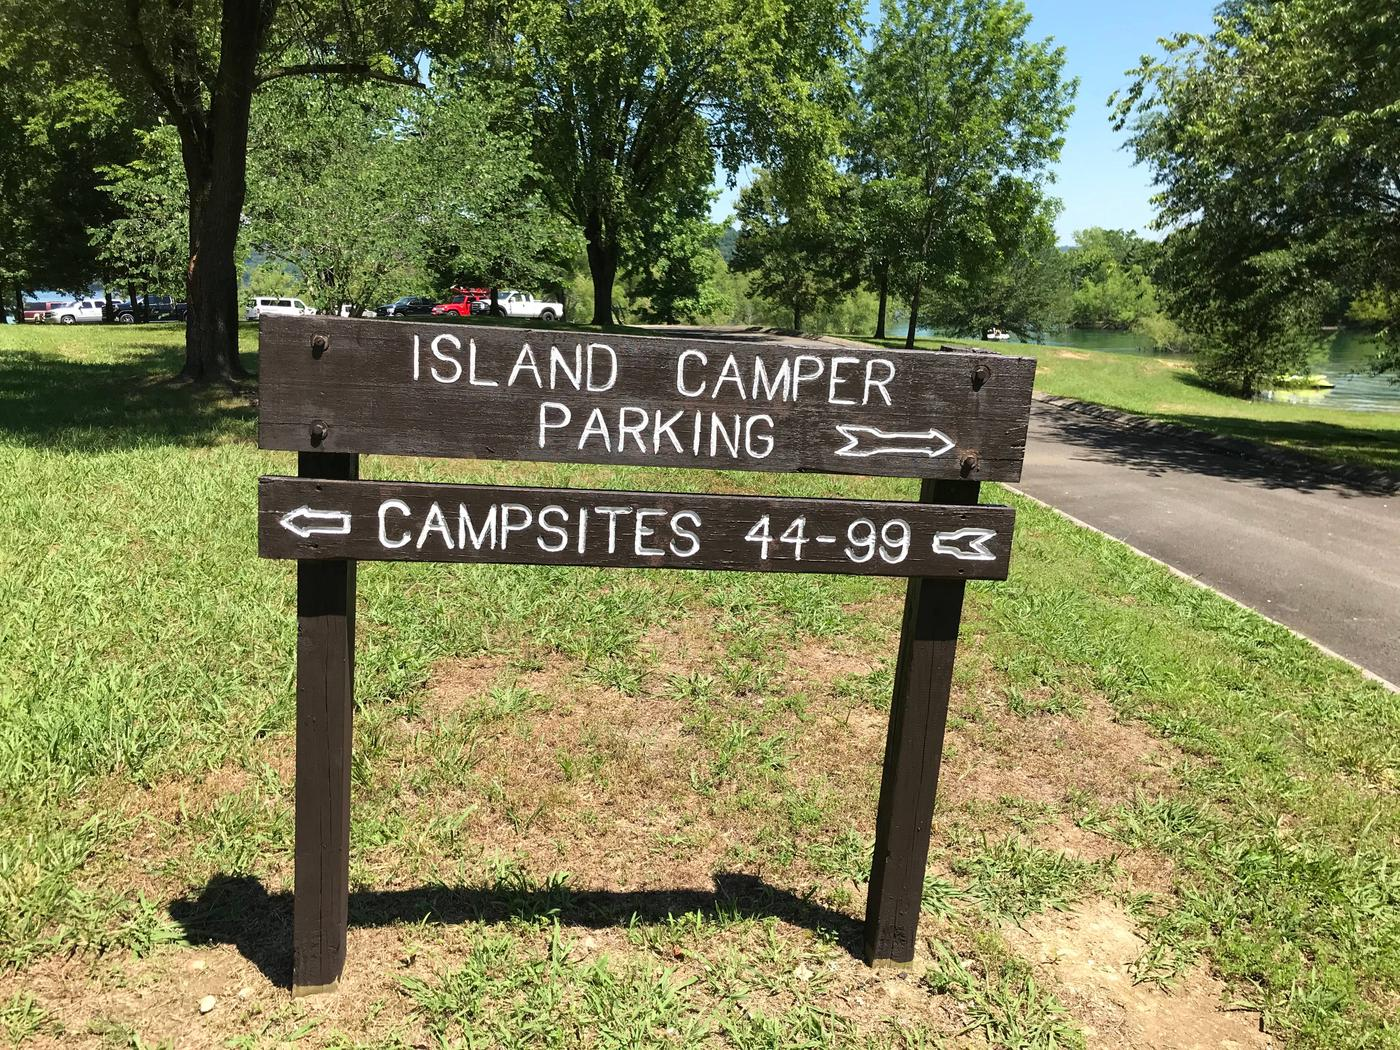 LILLYDALE CAMPGROUND SITE #101 ISLAND CAMPER DIRECTIONAL SIGN